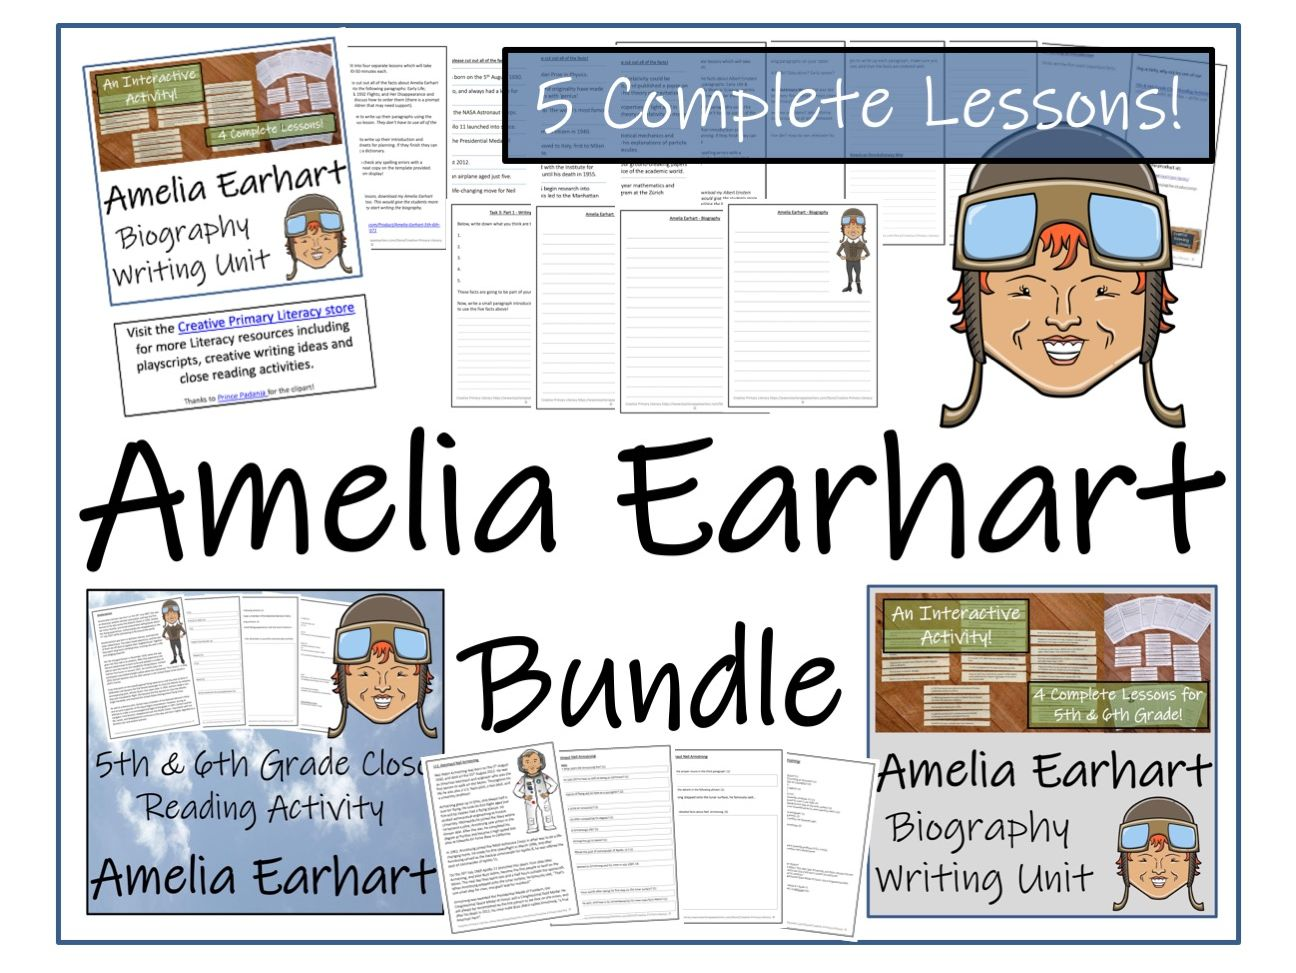 UKS2 History - Amelia Earhart Reading Comprehension & Biography Bundle